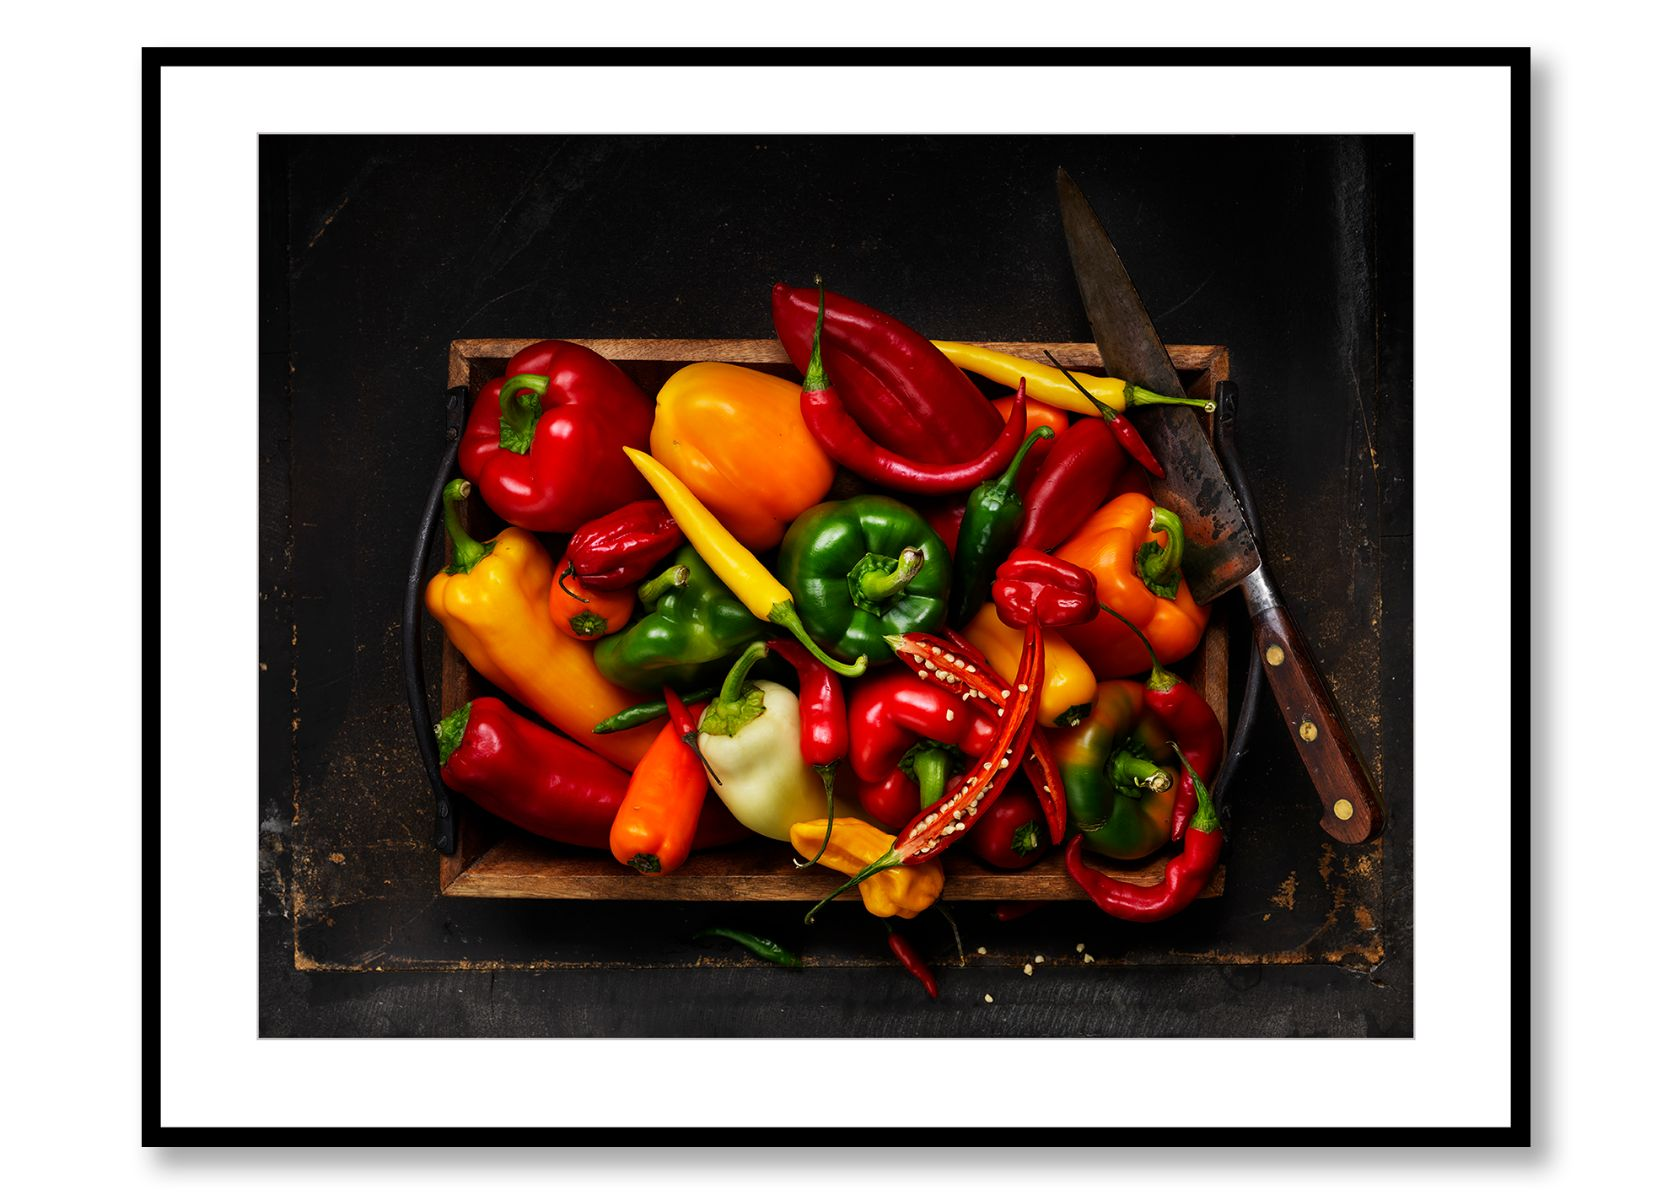 Chillies & Peppers. Food Art. Prints for sale. Photo by Fredrik Rege